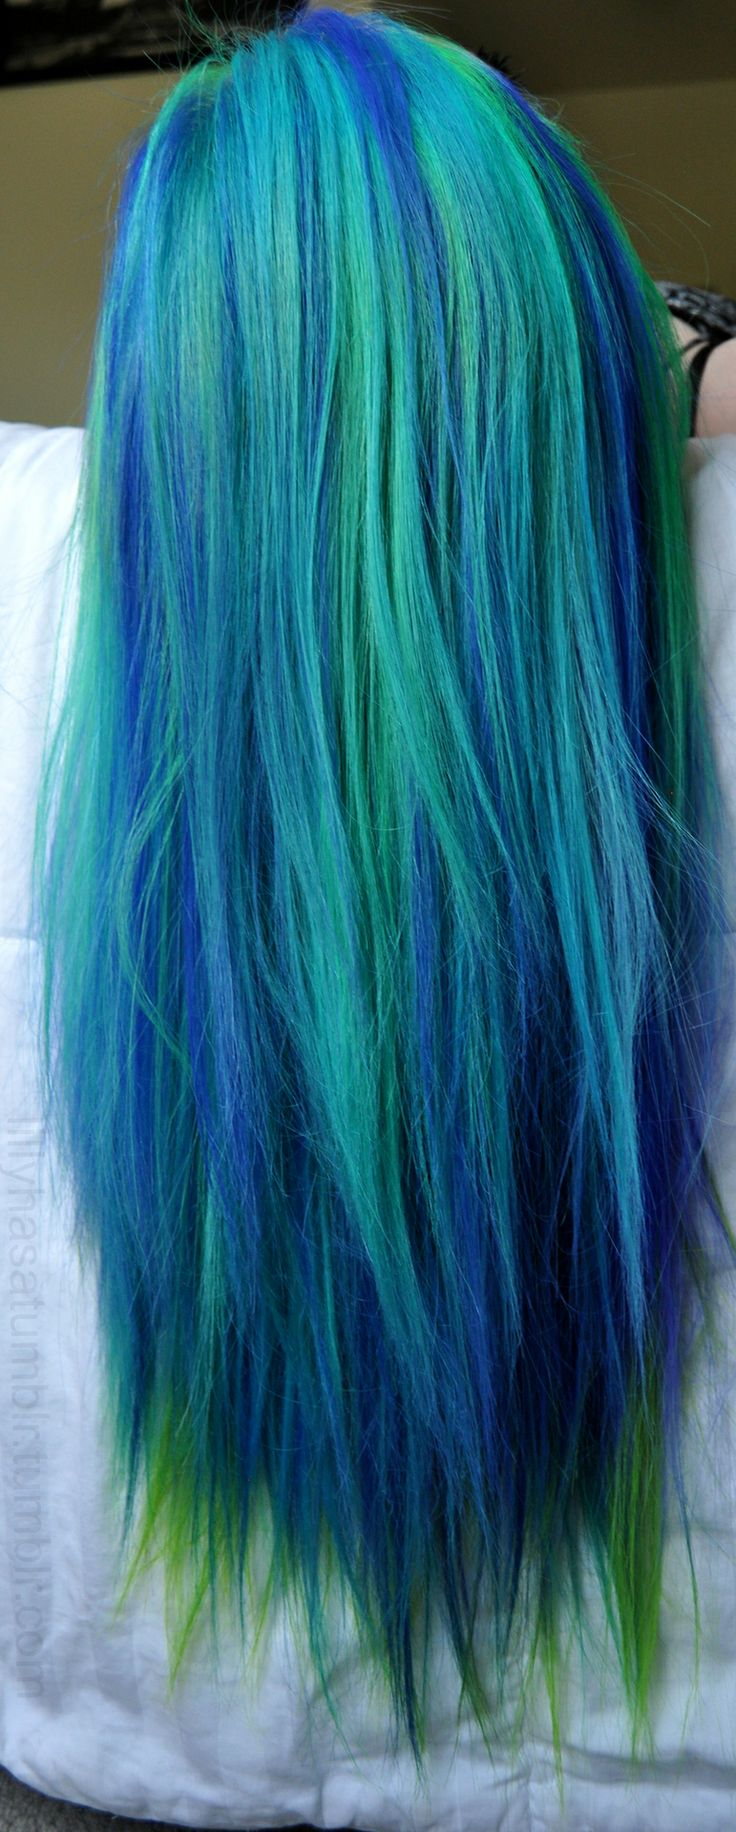 peacock blue and green hair | H a i r | Pinterest